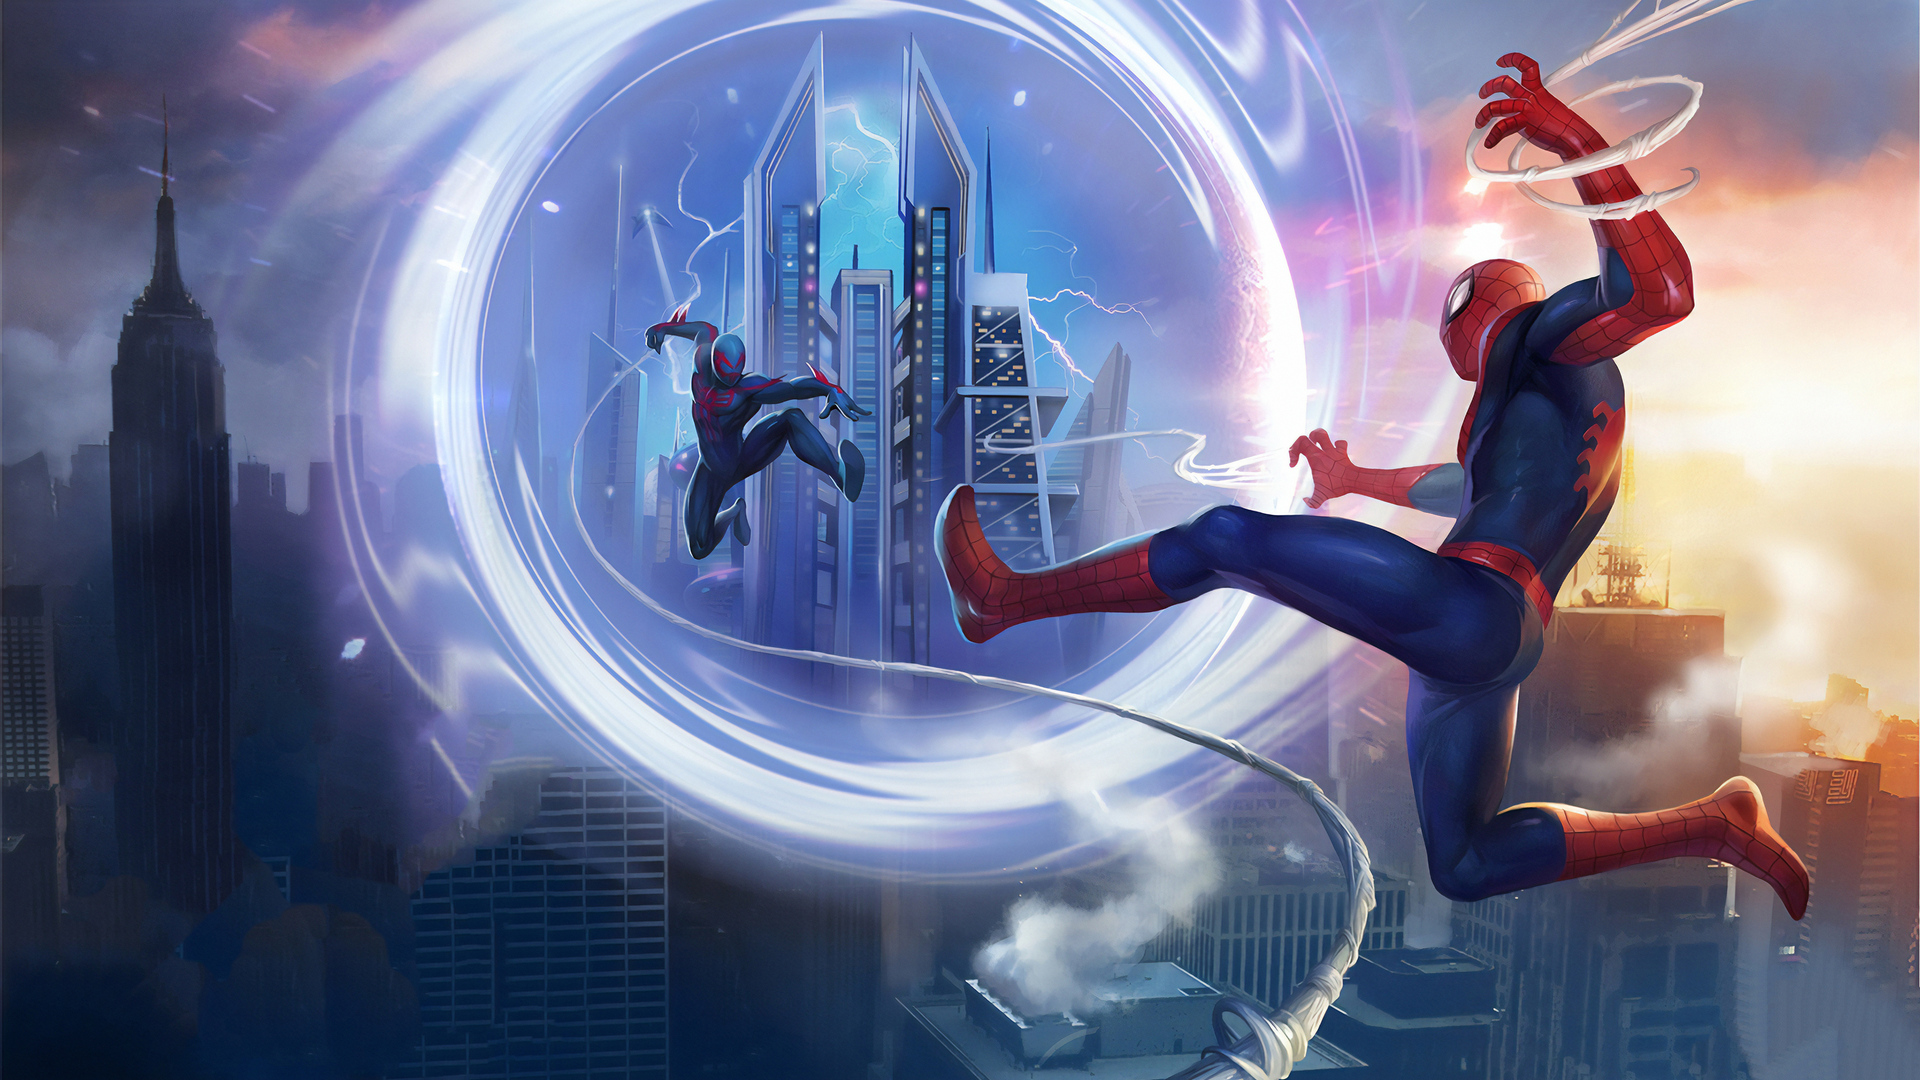 1920x1080 Spiderman Vs Spider Verse Laptop Full Hd 1080p Hd 4k Wallpapers Images Backgrounds Photos And Pictures